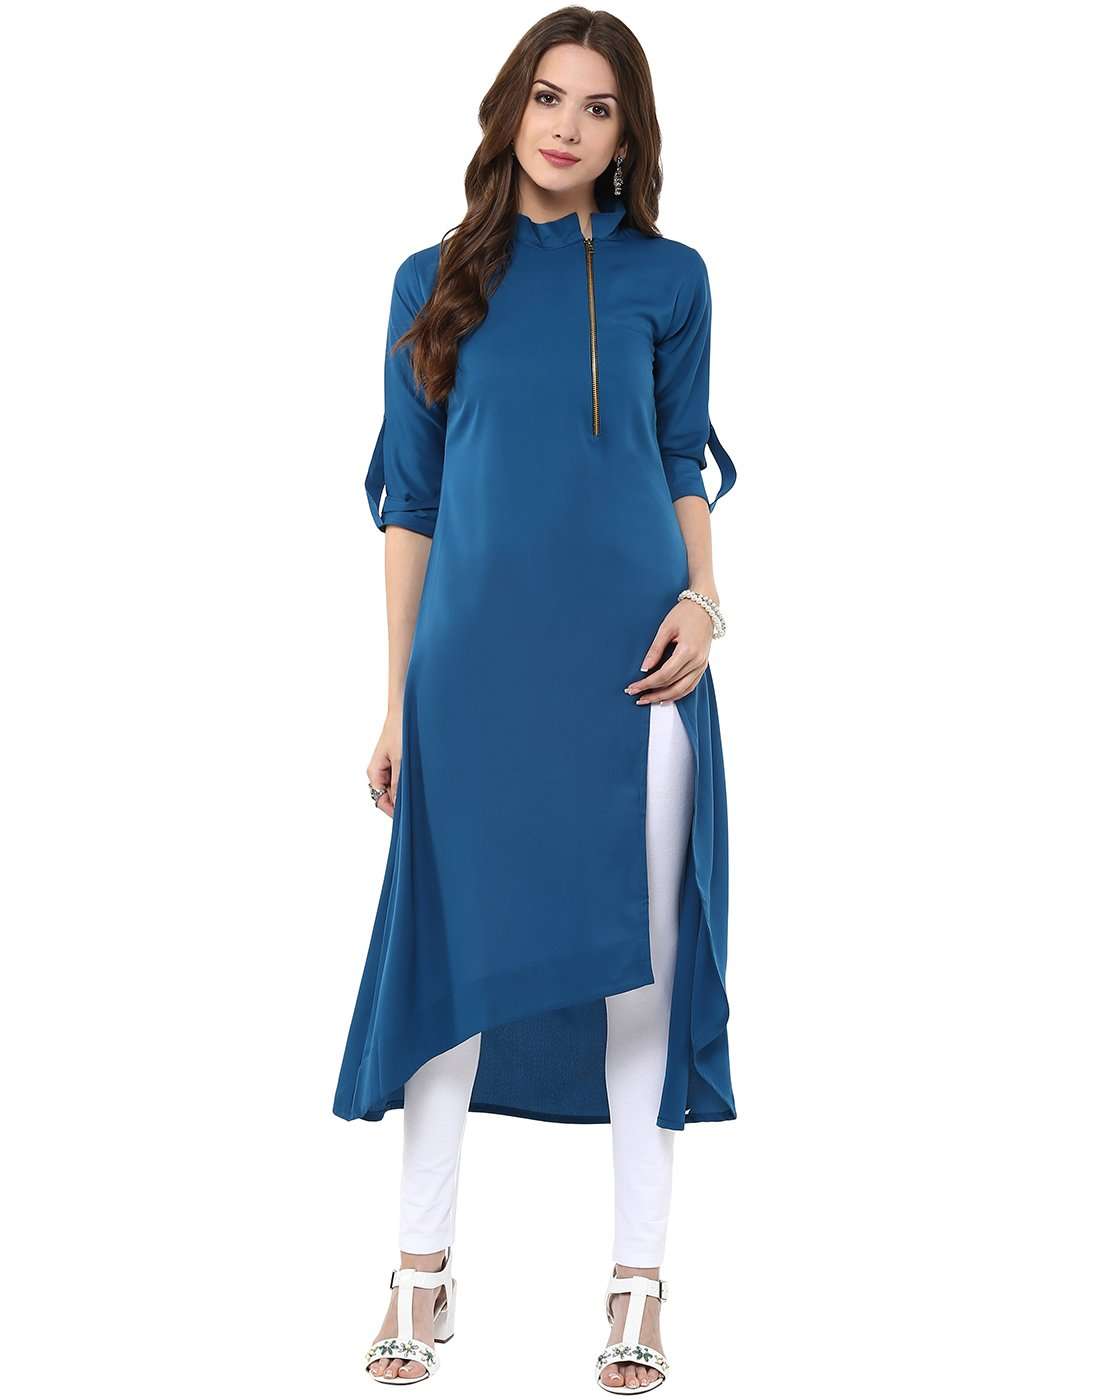 Janasya Indian Tunic Tops Crepe Kurti for Women (JNE1233-BLUE-KR-031-XL)